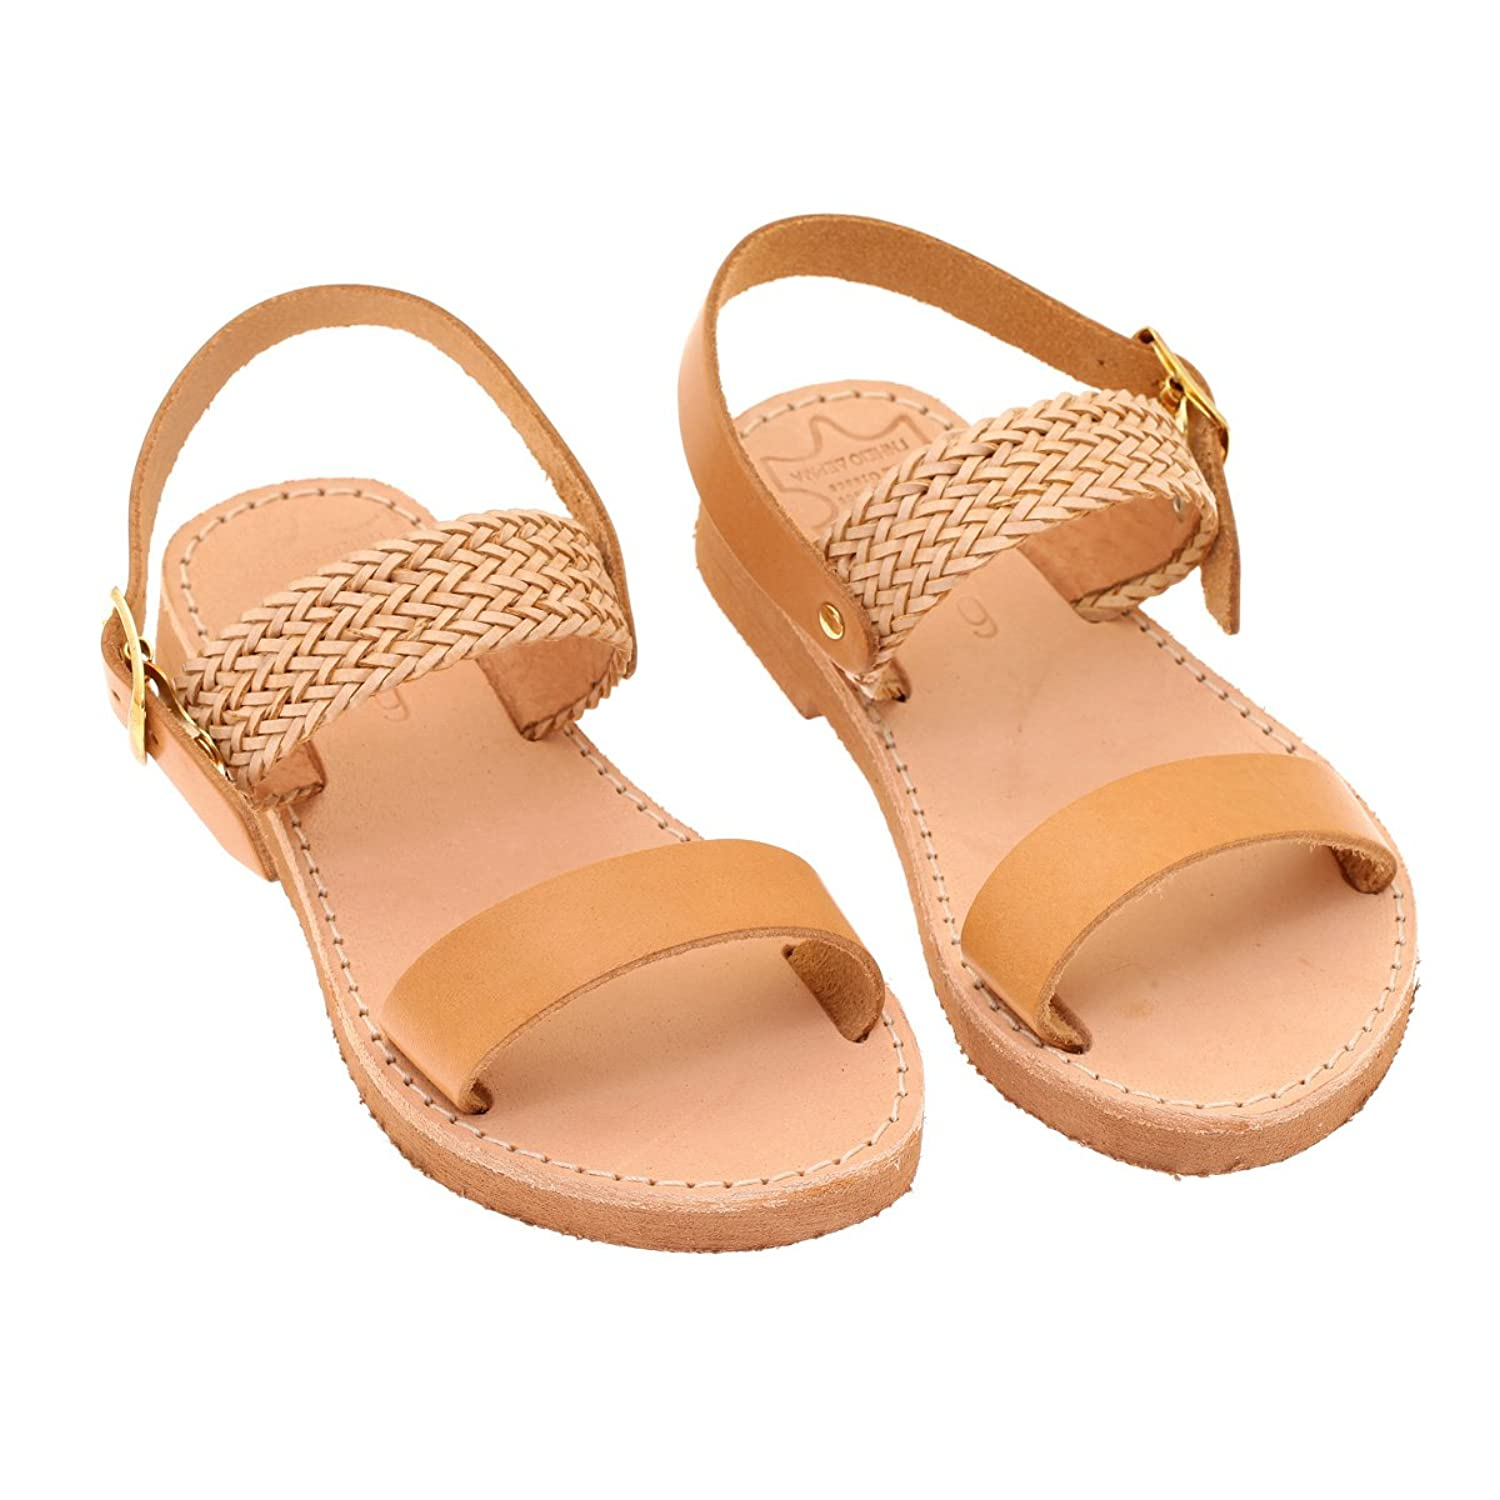 Handmade Leather Sandals For Children Model Schinoussa Natural